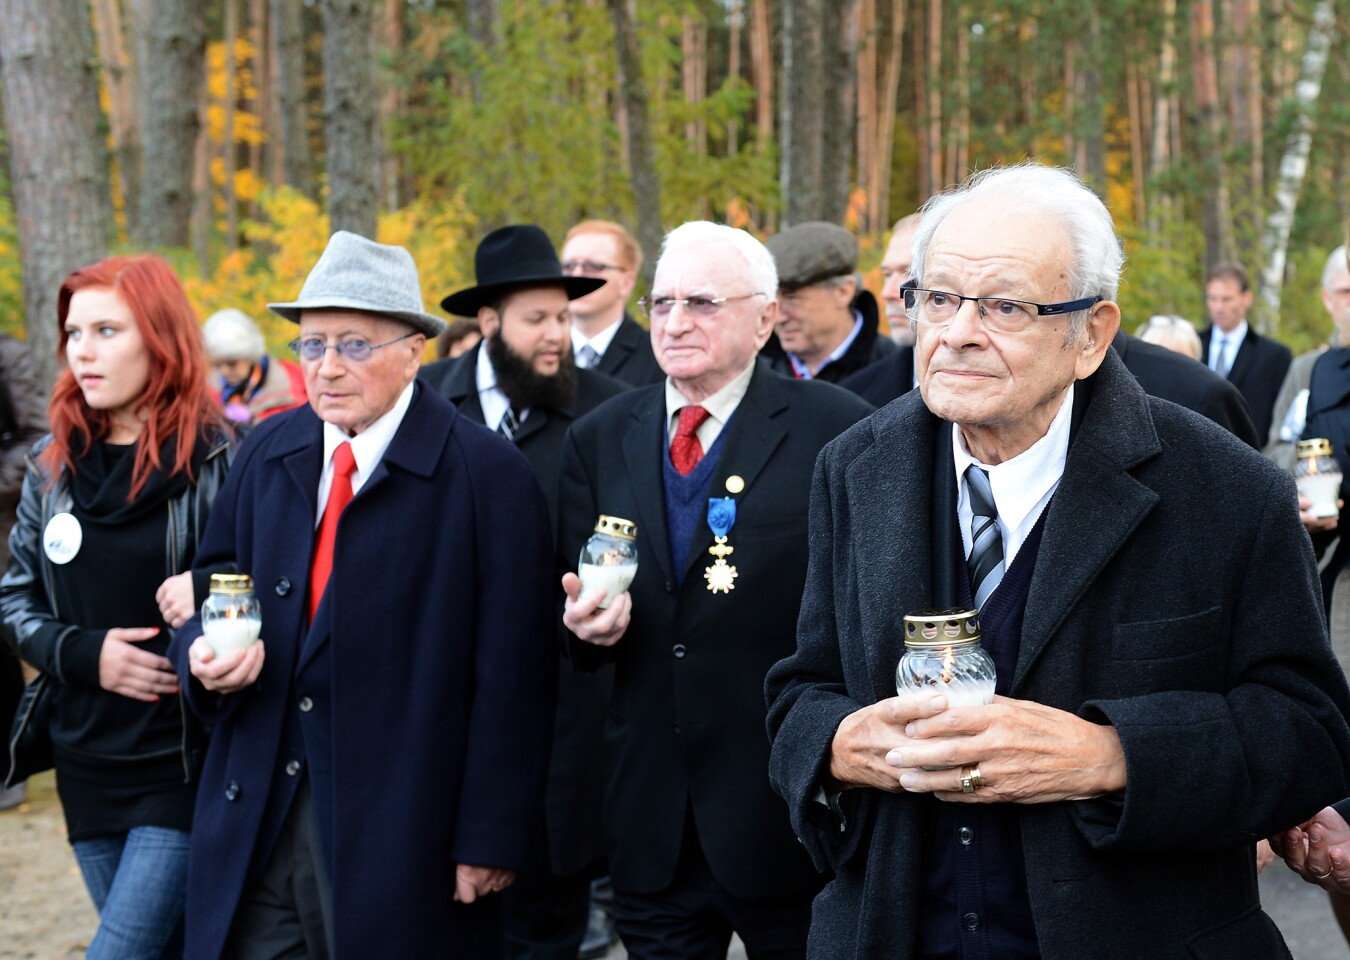 During a 2013 ceremony commemorating the 70th anniversary of a successful uprising at the Sobibor camp, insurgents Philip Bialowitz, from left, Thomas Blatt and Jules Schelvis light candles.